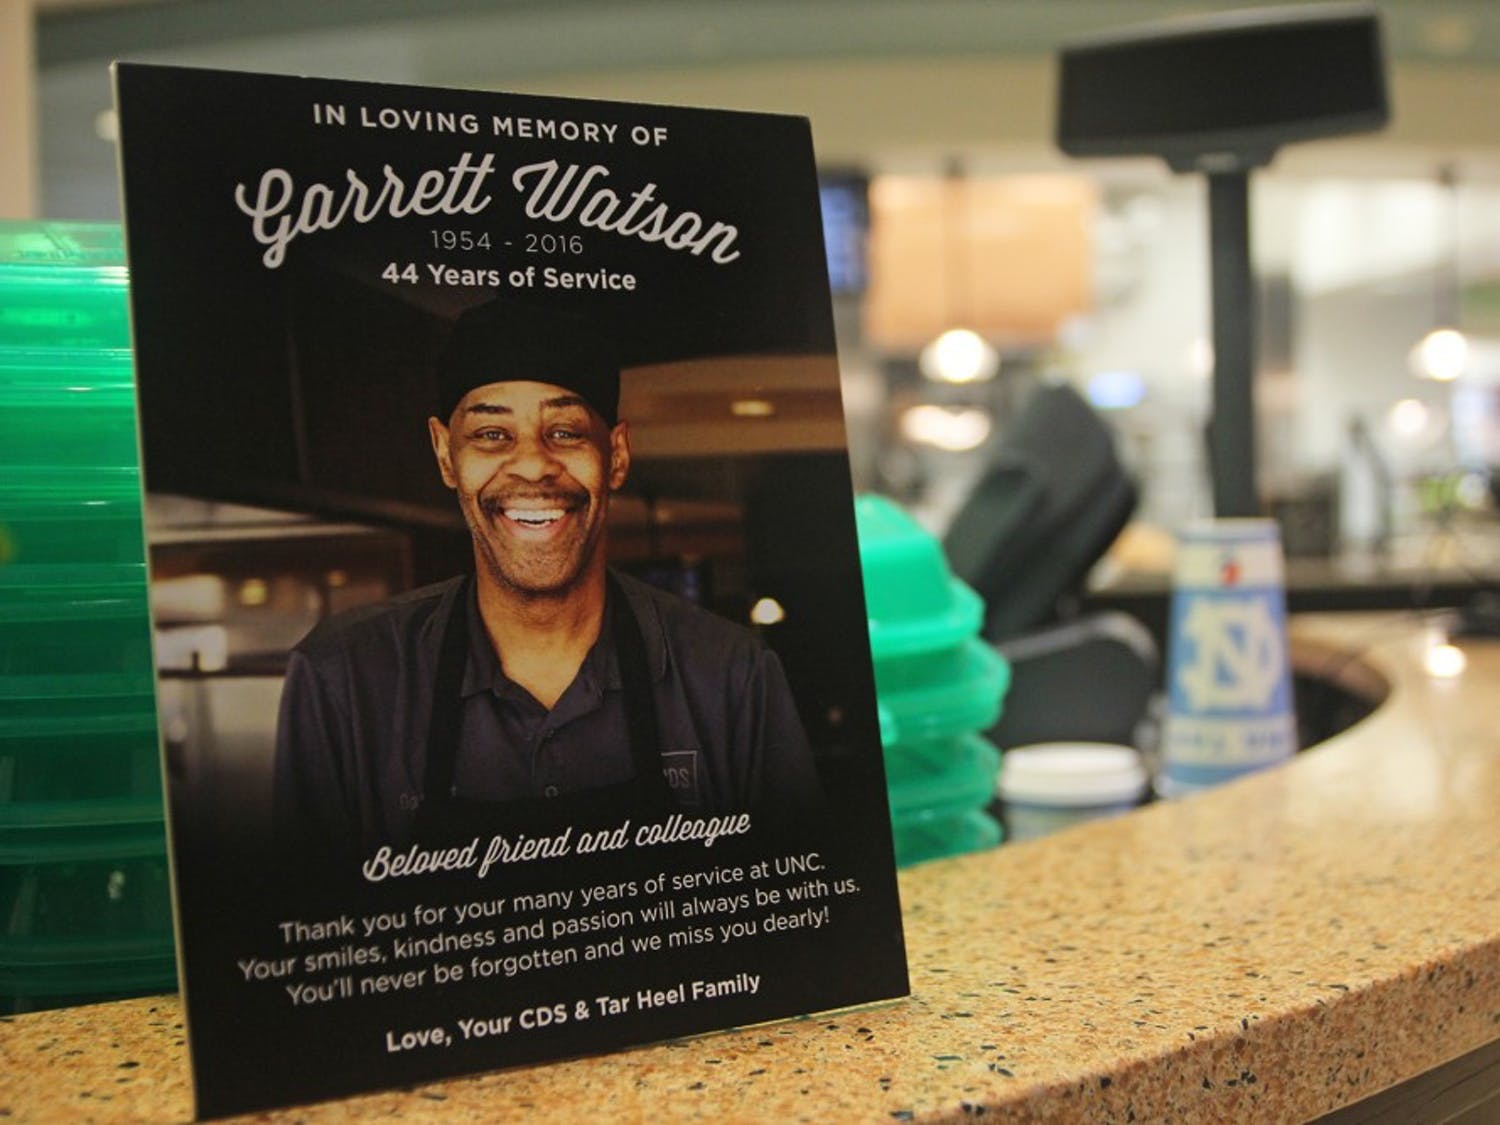 Carolina Dining Services put up a plaque in the front of Rams Dining Hall in memory of Garrett Watson.